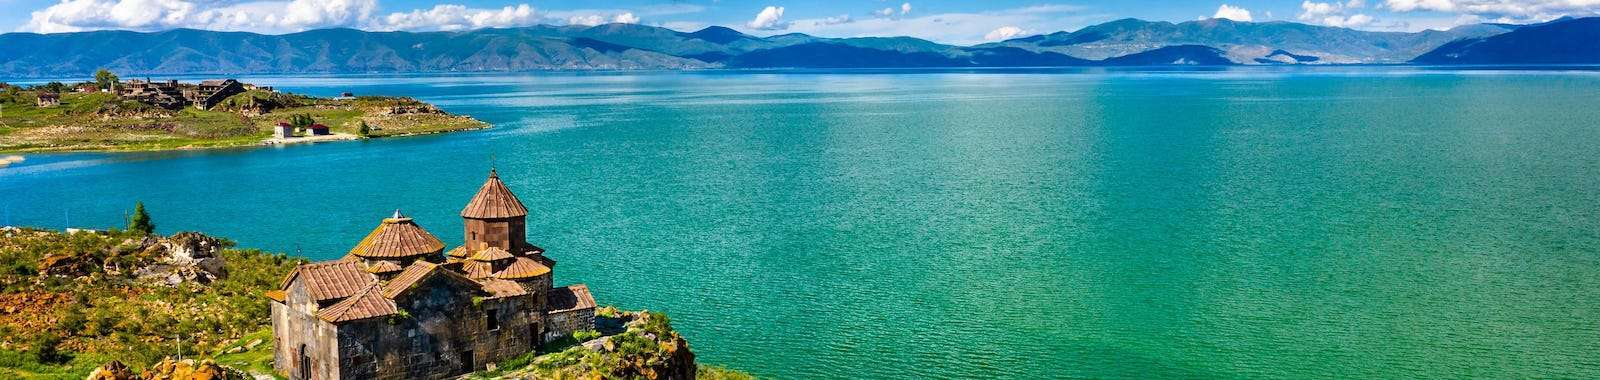 Visit Lake Sevan on a tailor-made holiday to Armenia